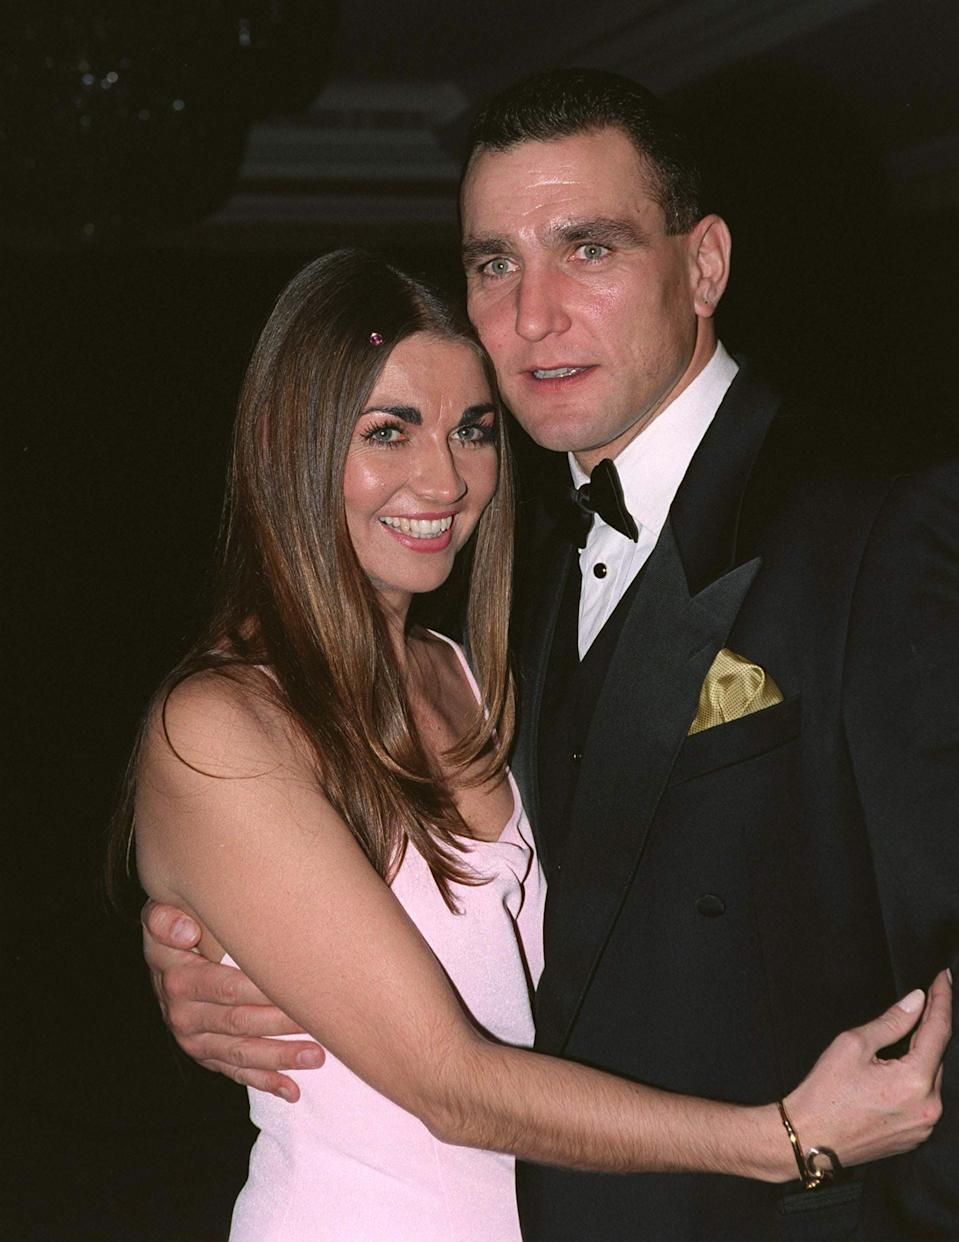 Vinnie Jones - with Tanya at a ball at the Hilton Hotel In London [ Sport Aiding Medical Research For Kids]. (Photo by Tim Graham/Getty Images)